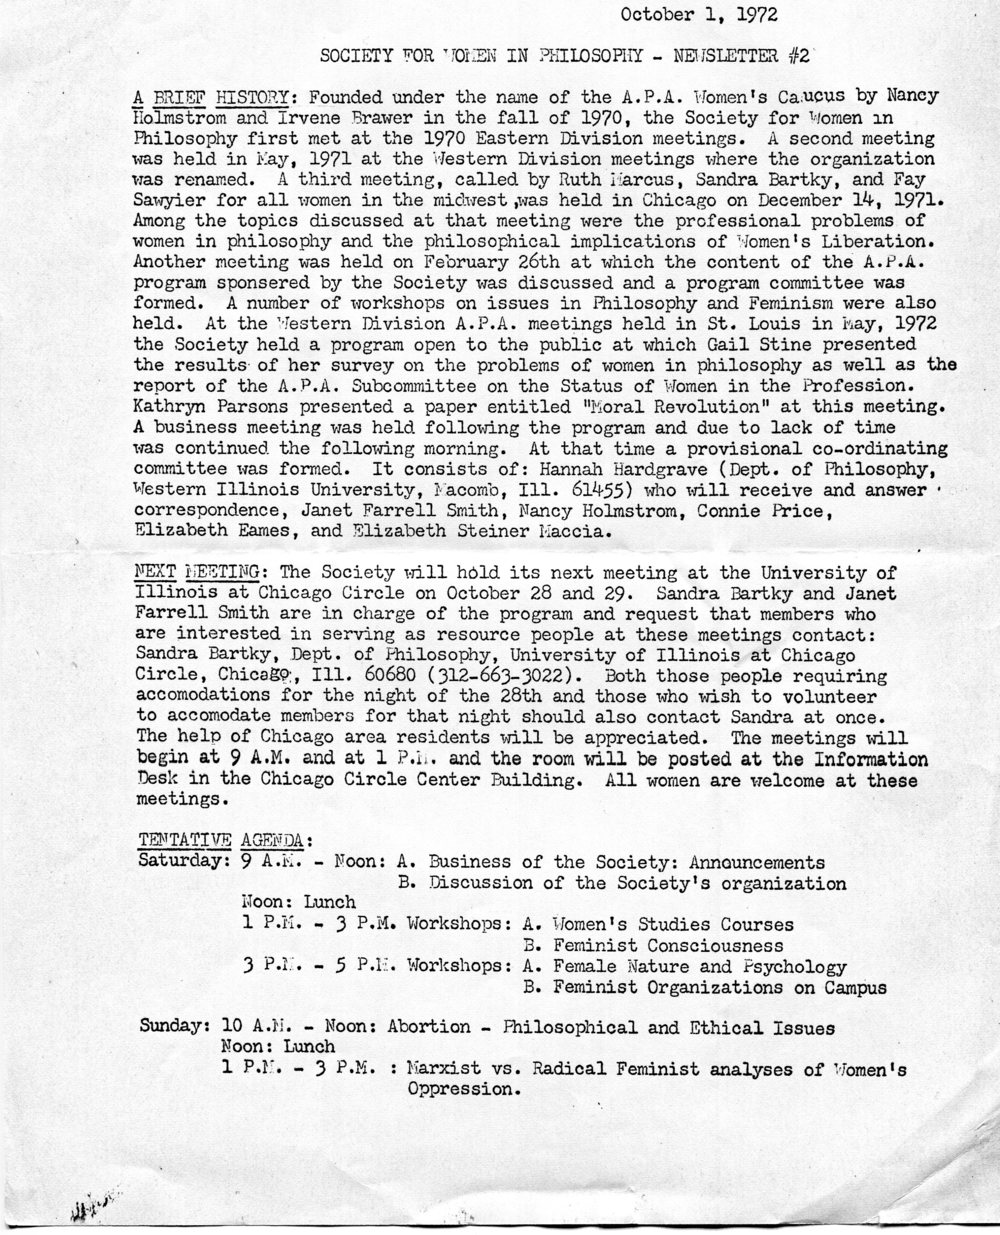 Second newsletter for the Society for Women in Philosophy, October 1st, 1972. Society for Women in Philosophy Collection, Feminist Theory Archive, Brown University